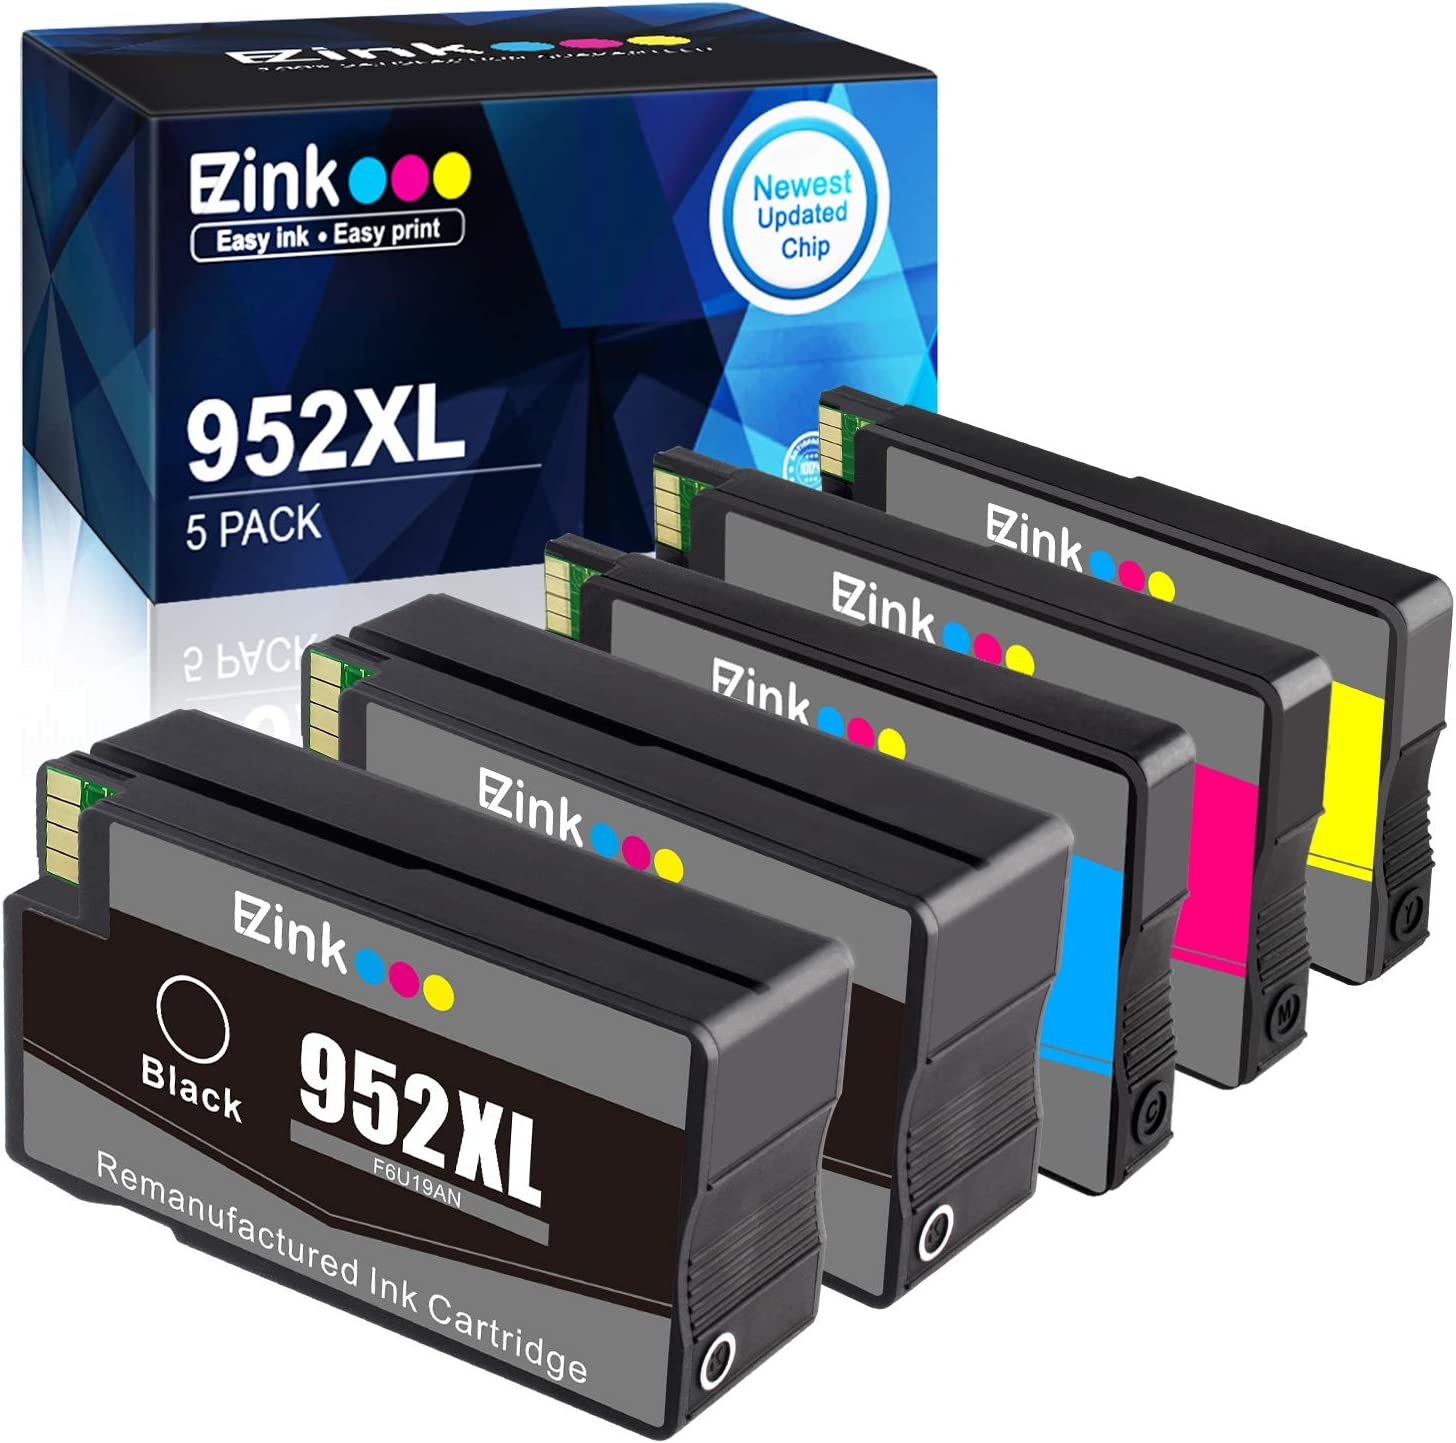 E-Z Ink (TM) Remanufactured Ink Cartridge Replacement for HP 952 XL 952XL 952 (2 Black, 1 Cyan, 1 Magenta, 1 Yellow, 5 Pack)